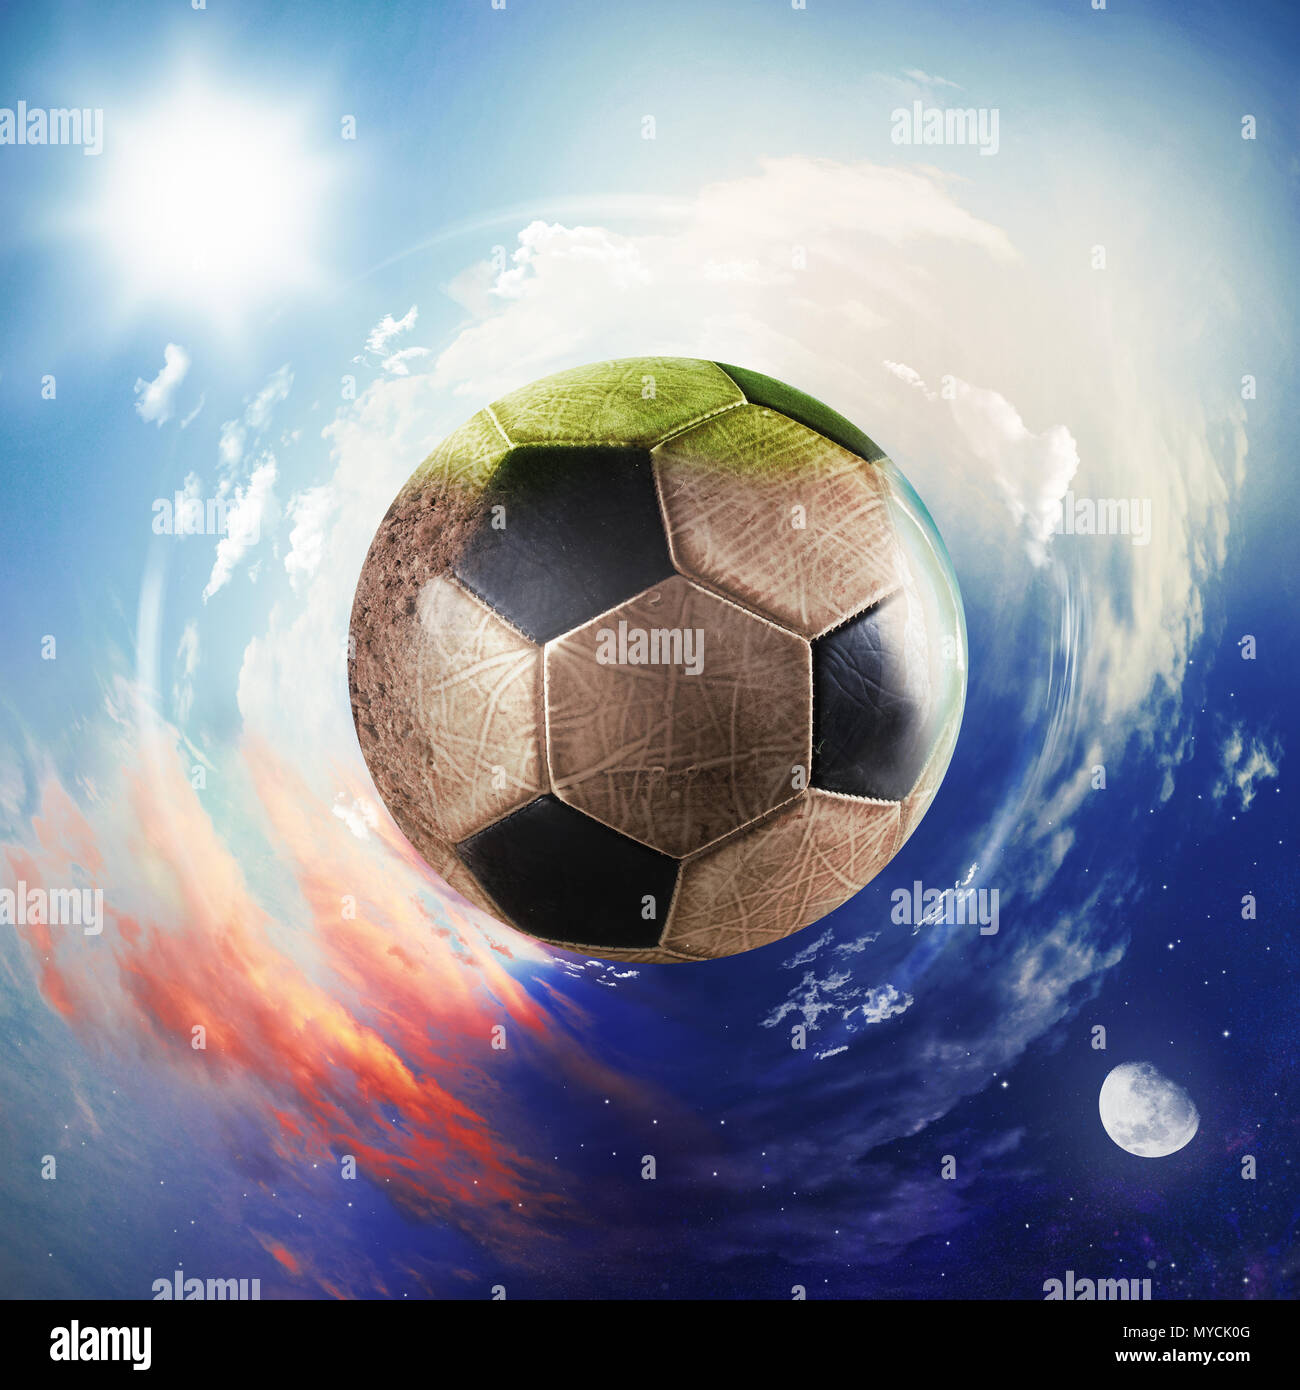 Global view of soccer world. football ball as a planet - Stock Image